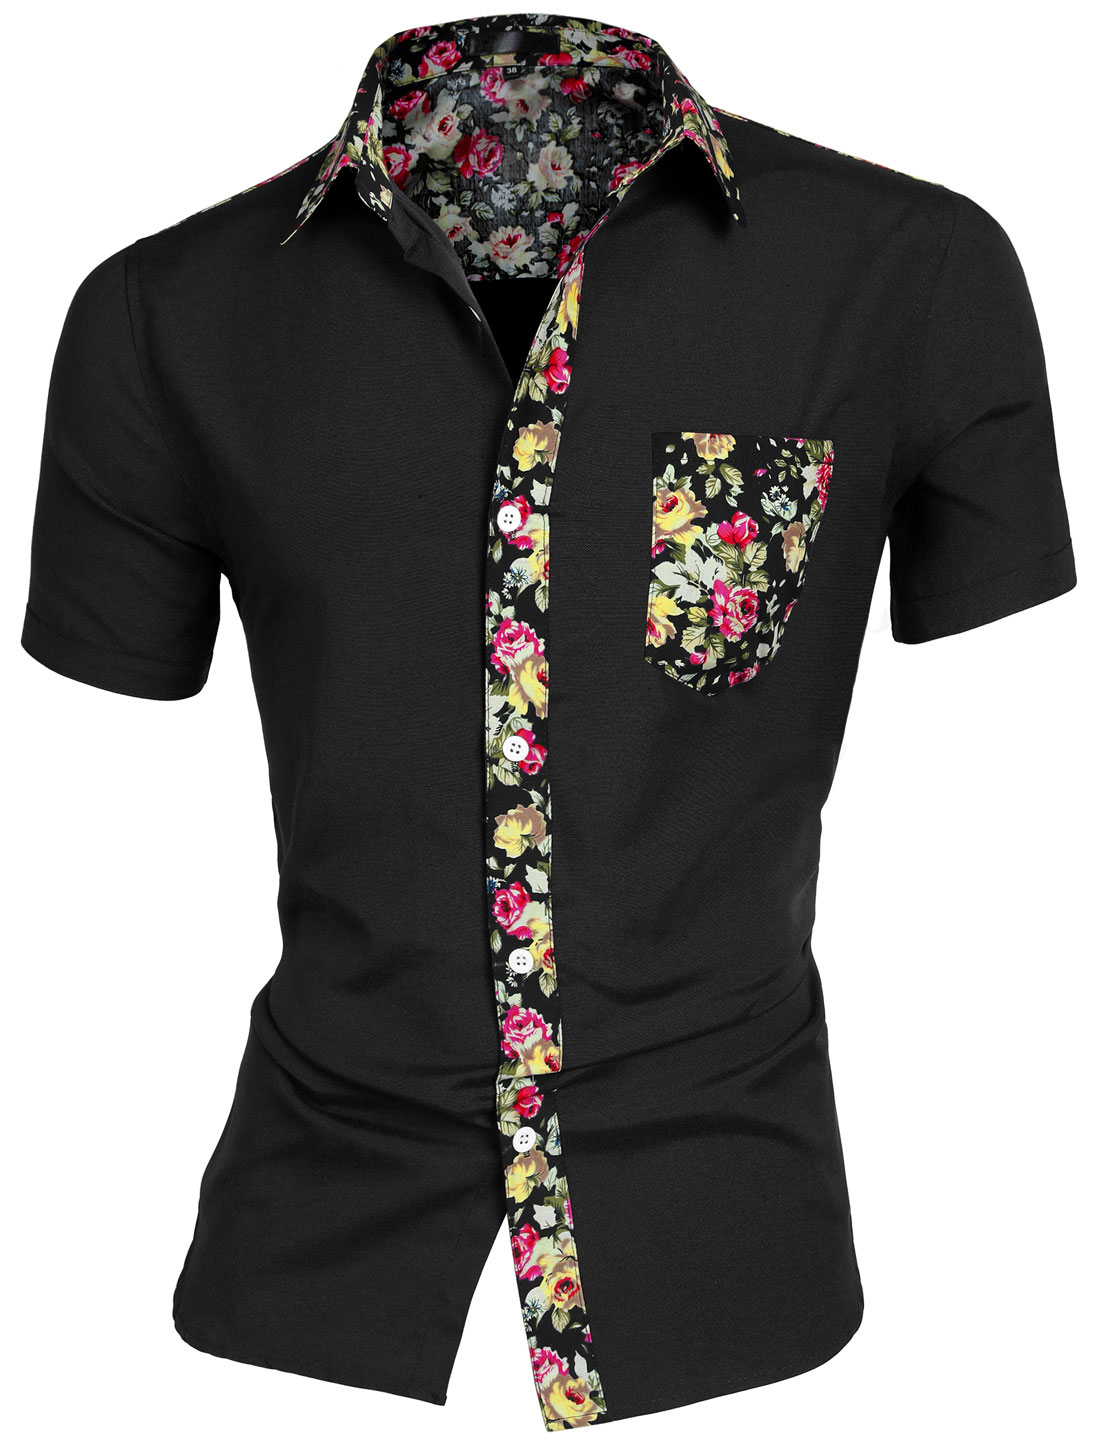 Men Floral Print Round Hem Chest Pocket Short Sleeve Button Down Shirt Black M